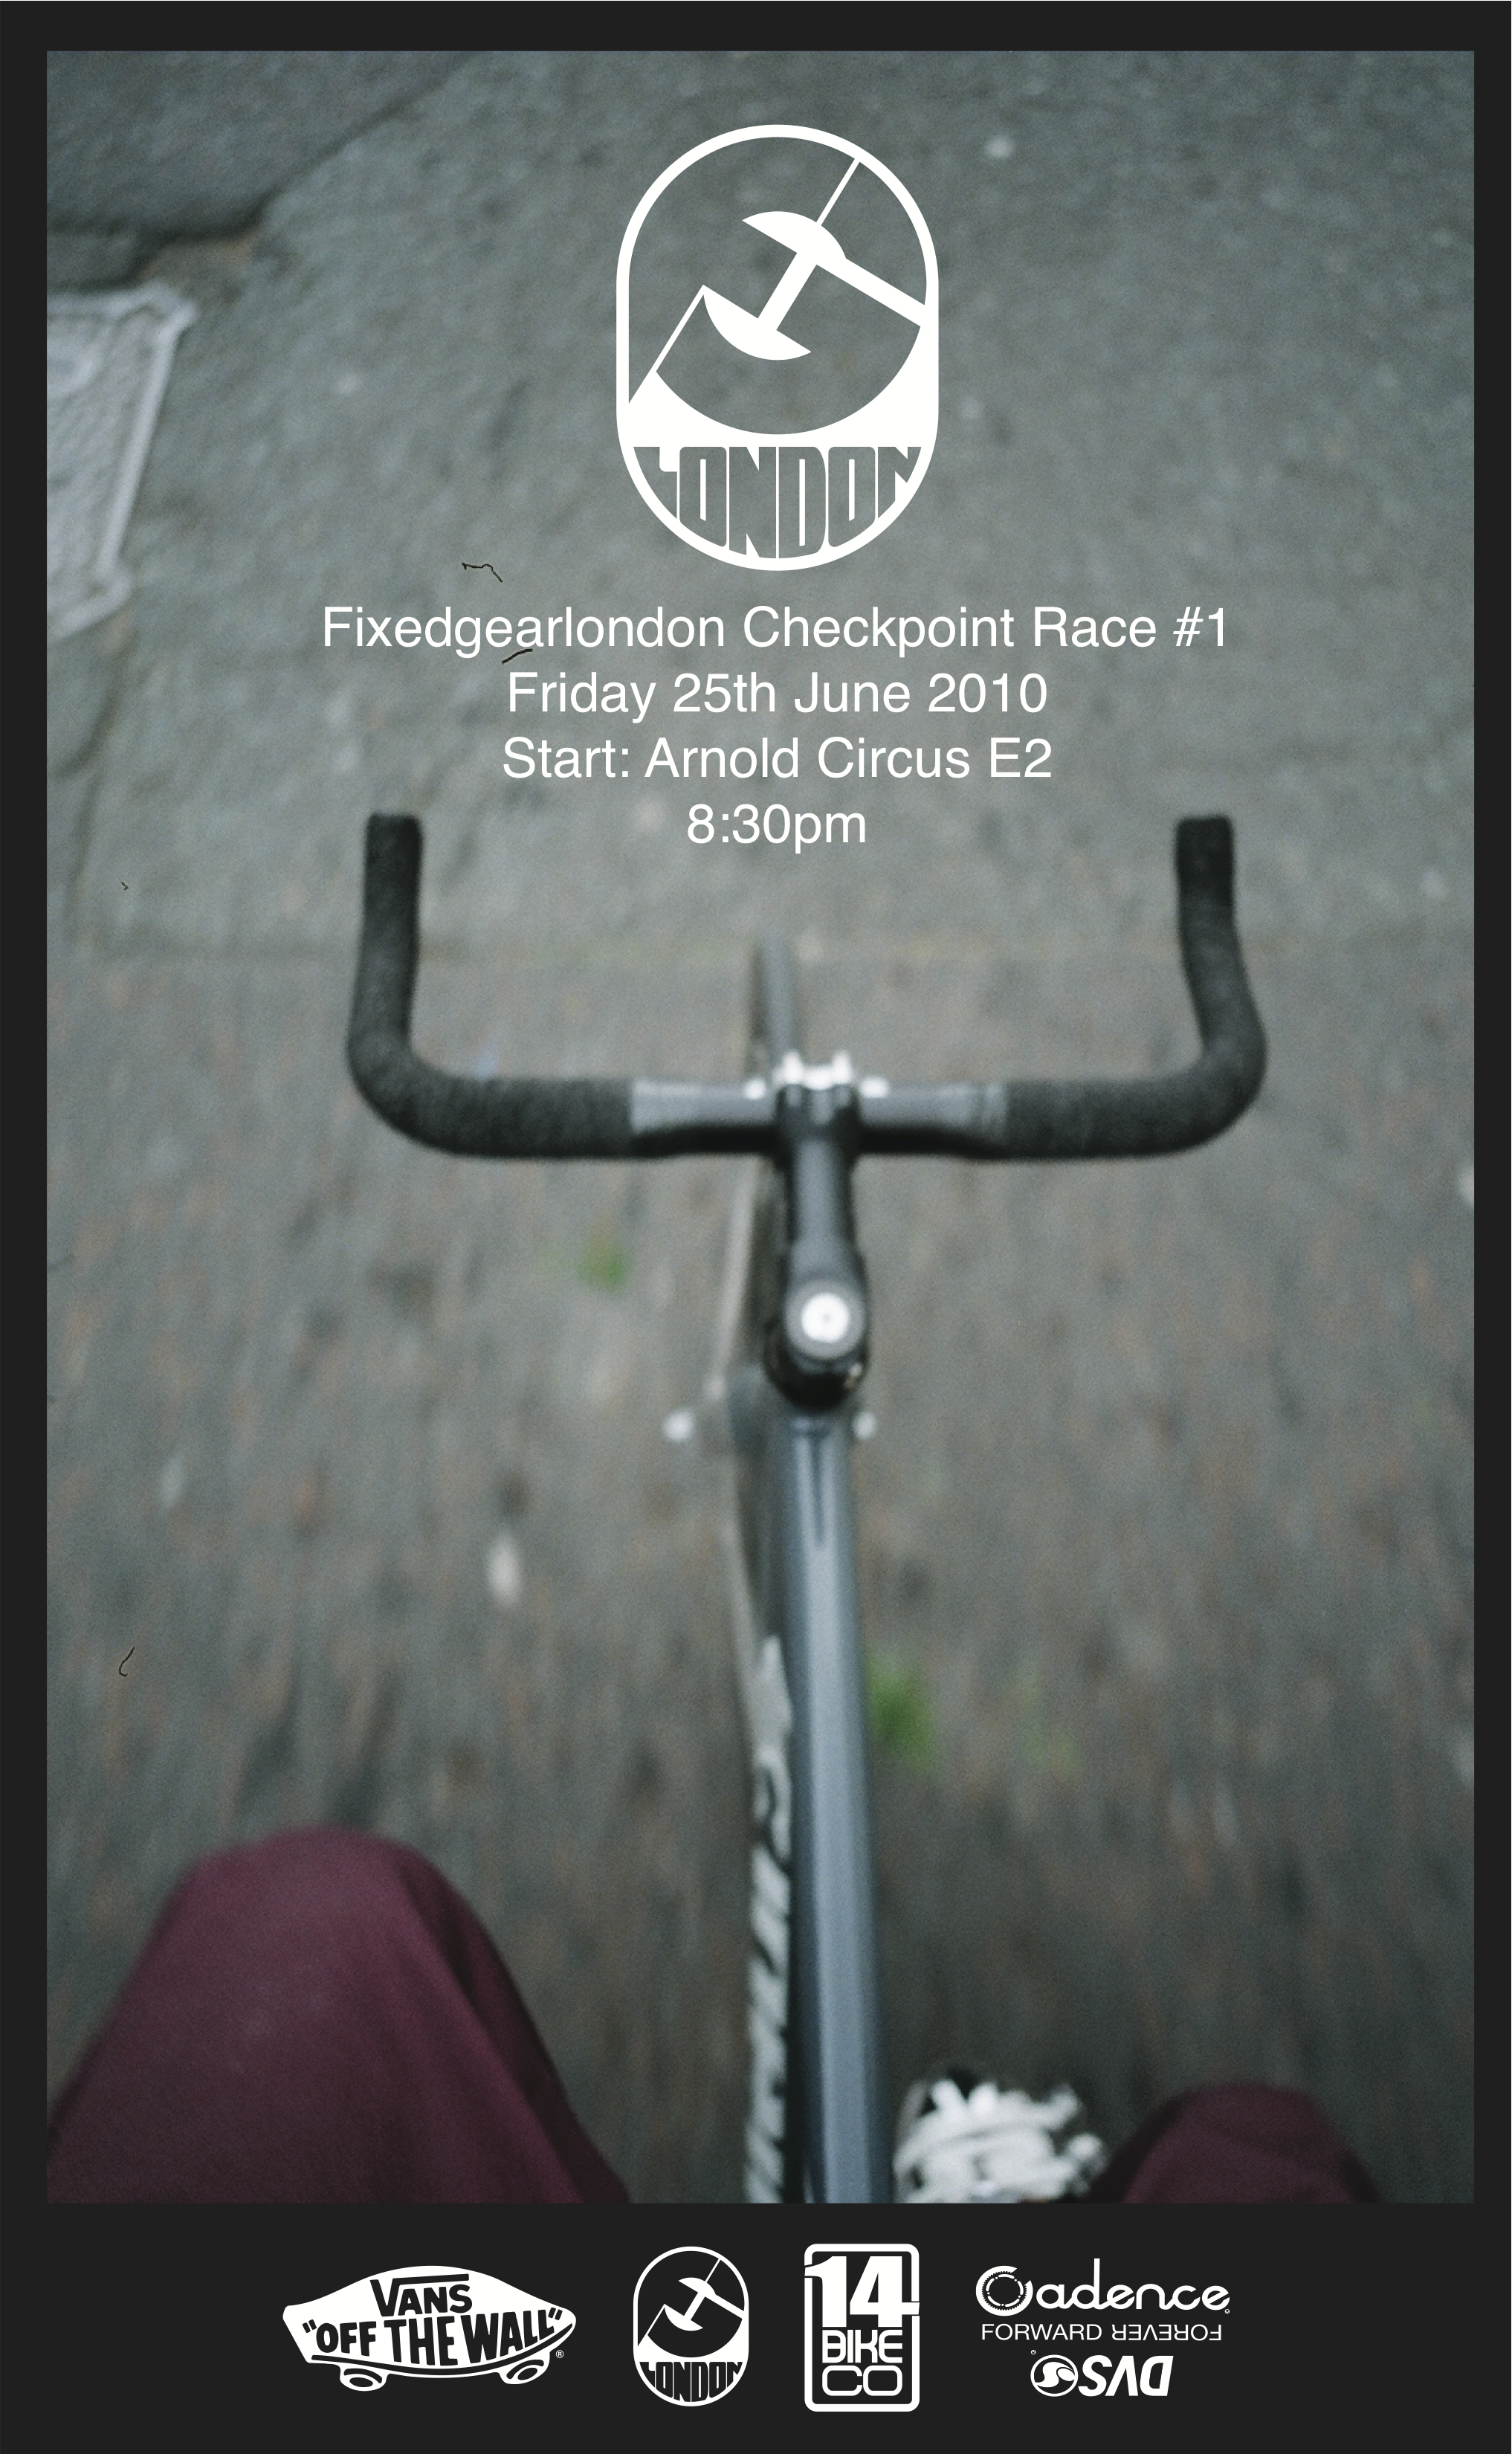 fixedgearlondon_checkpoint_race#1 FINAL